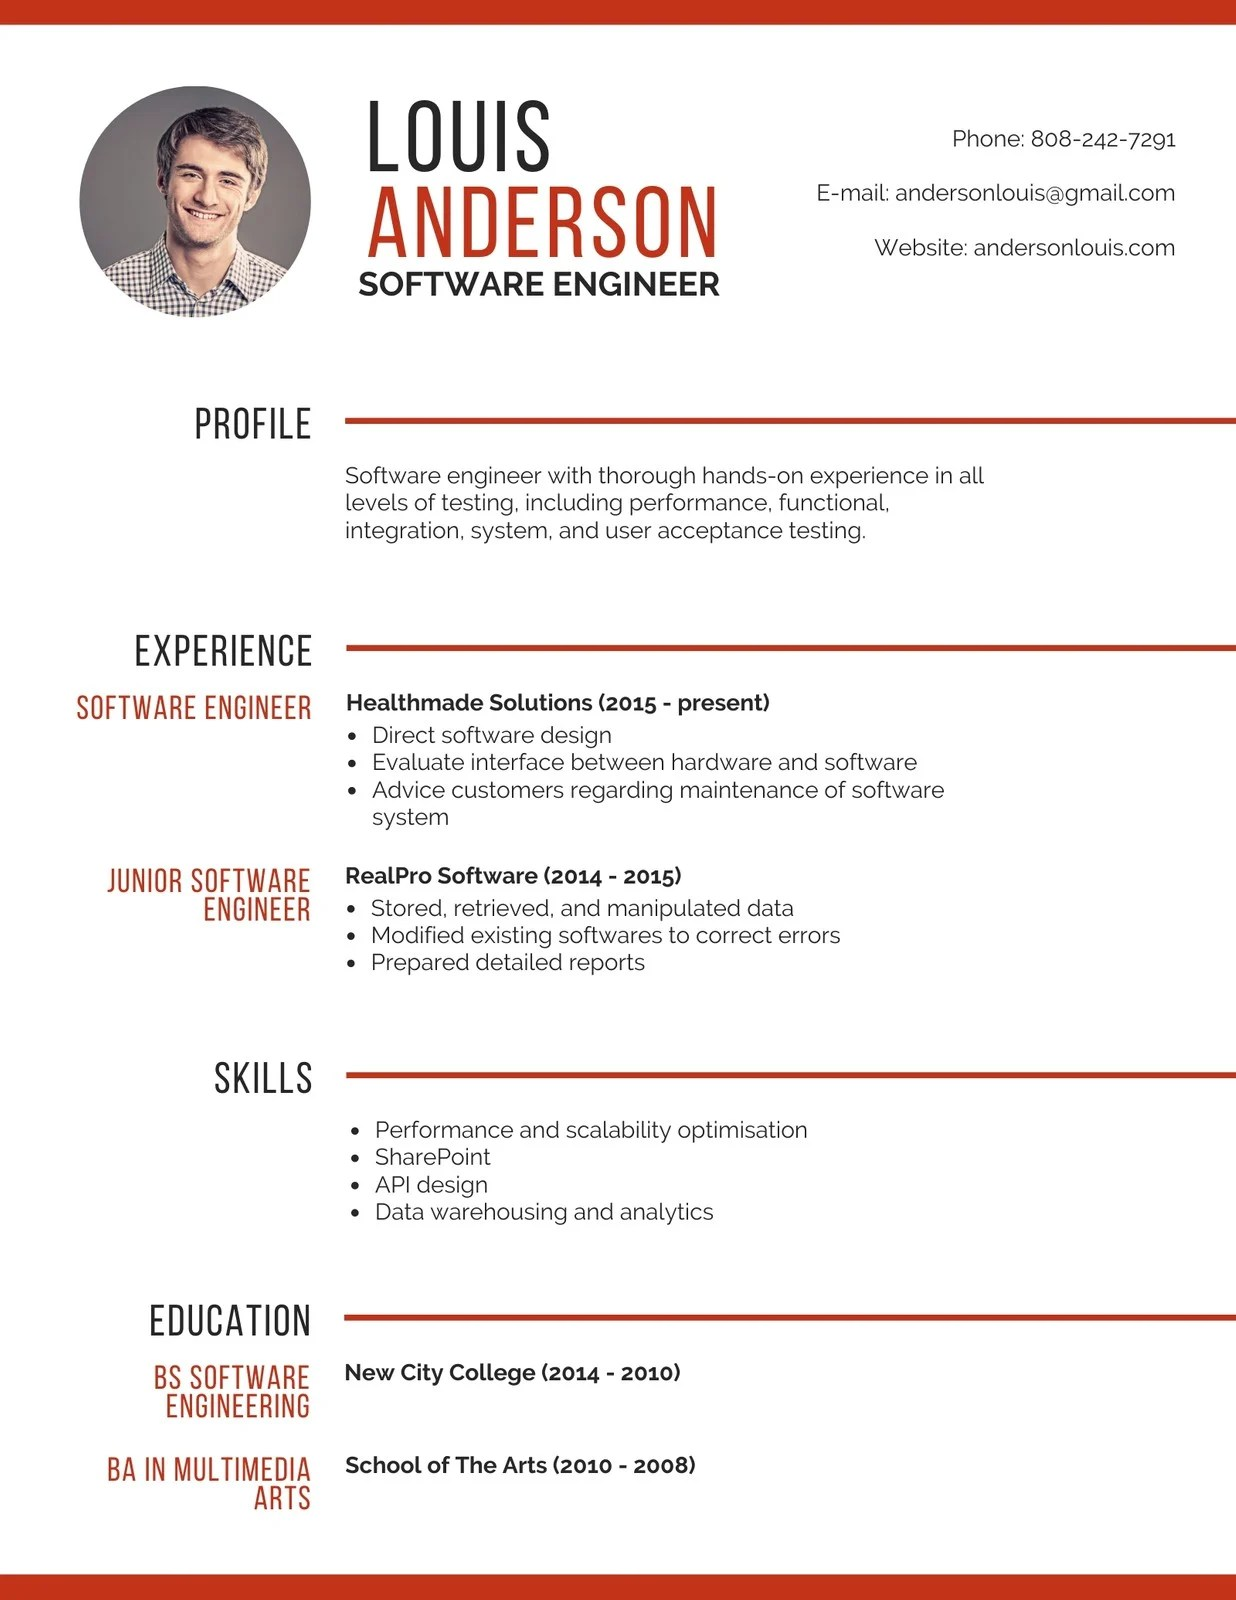 How to write a software engineer resume? Professional Software Engineer Resume Templates By Canva